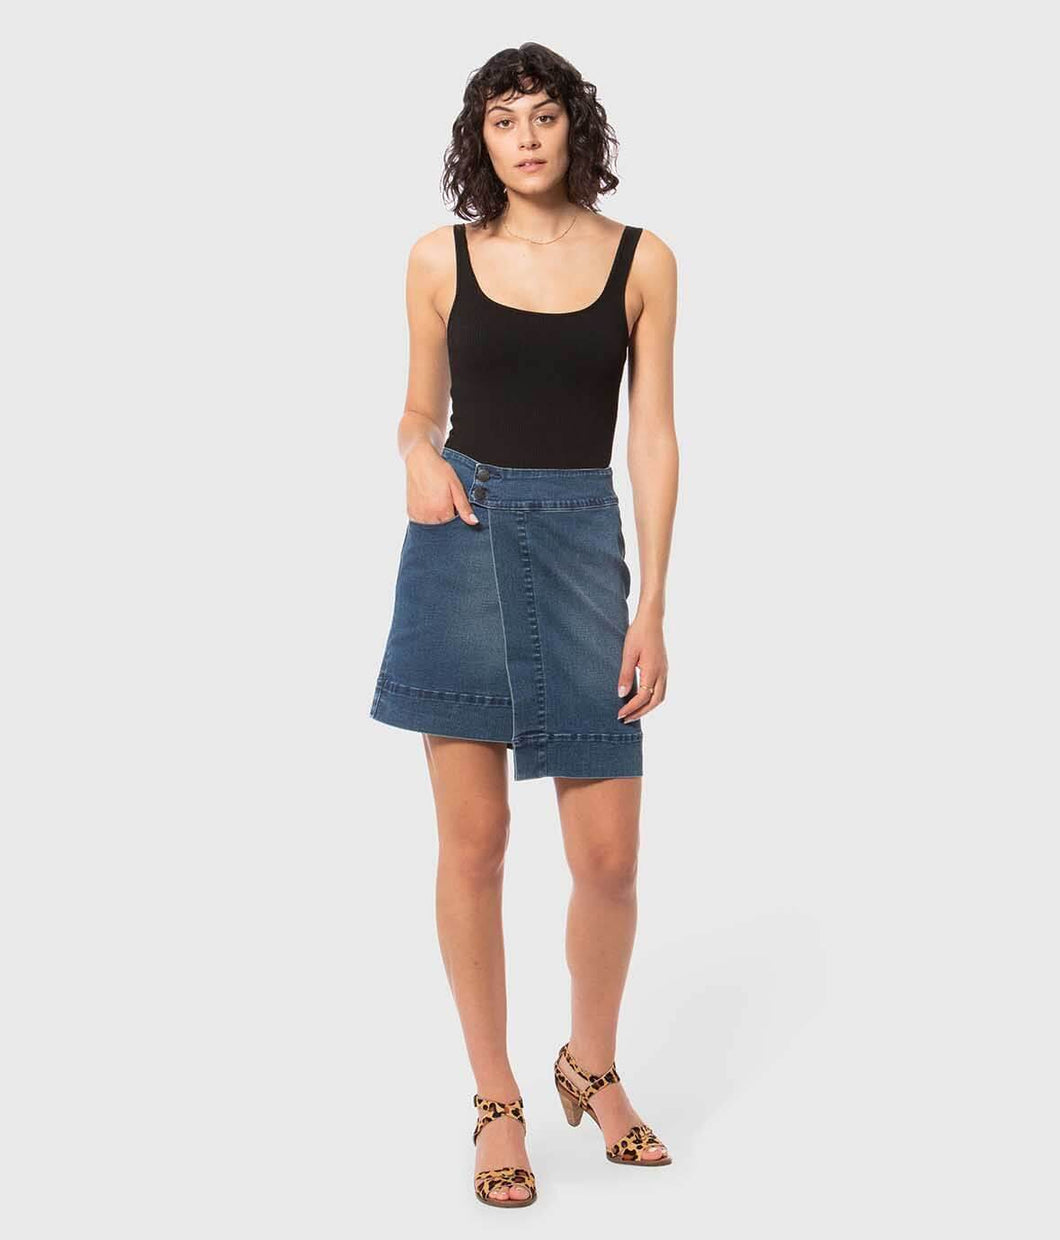 Lola Jeans Brody Skirt